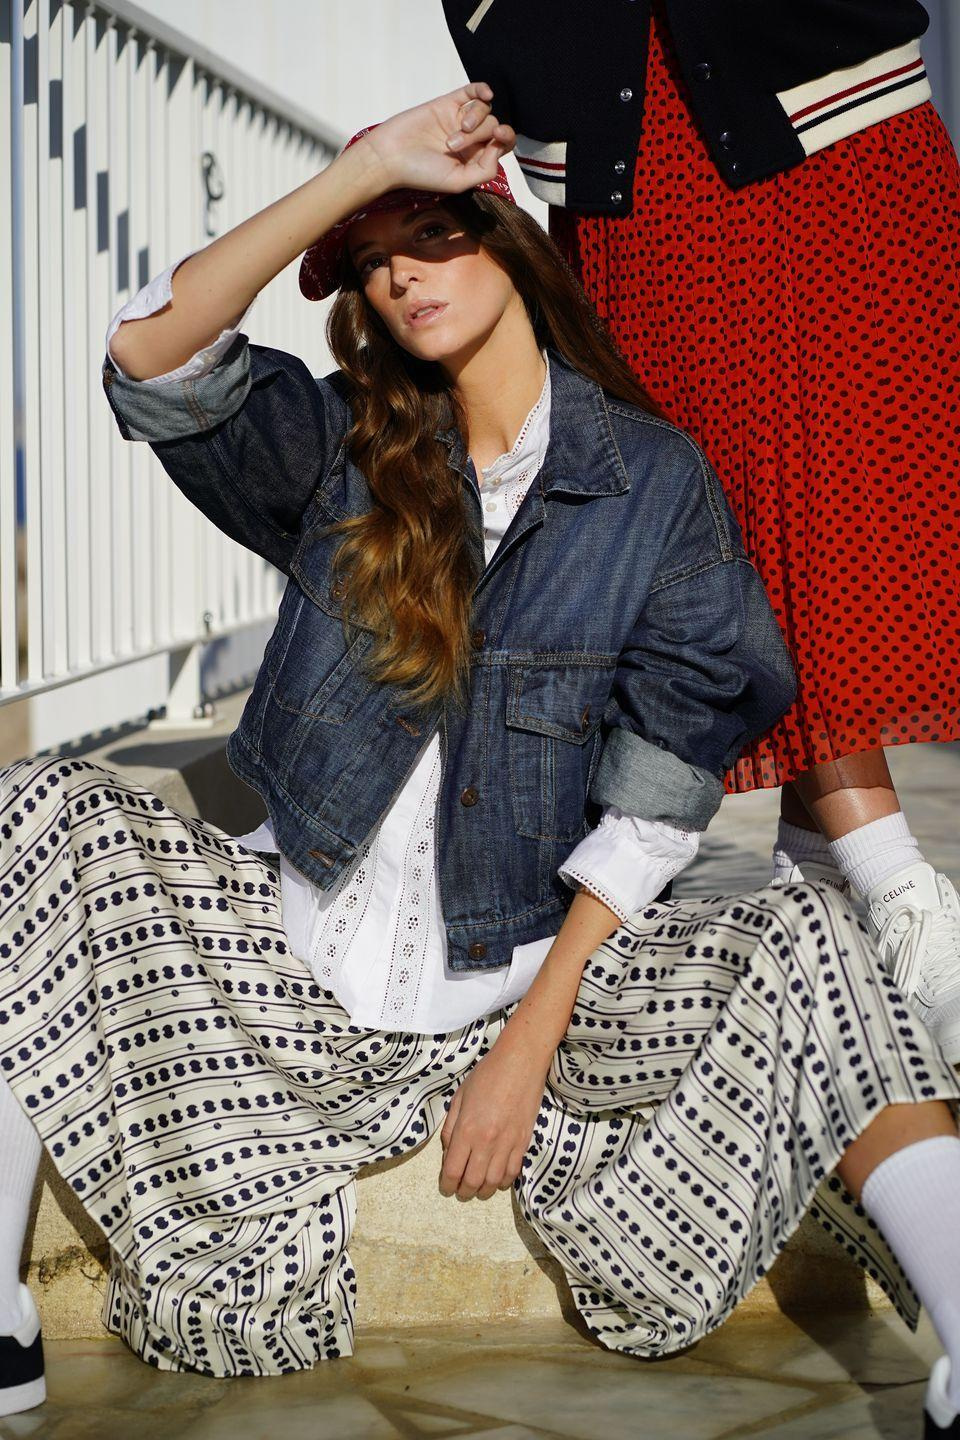 <p>Giubbotto di denim oversize, <strong>Weekend Max Mara</strong> (229 euro), blusa con inserti di pizzo, <strong>Marella</strong> (139 euro), come la gonna pantalone di twill (179 euro); baseball cap <strong>HTC Los Angeles</strong>, calze vintage, sneakers <strong>Adidas Originals</strong>.</p>